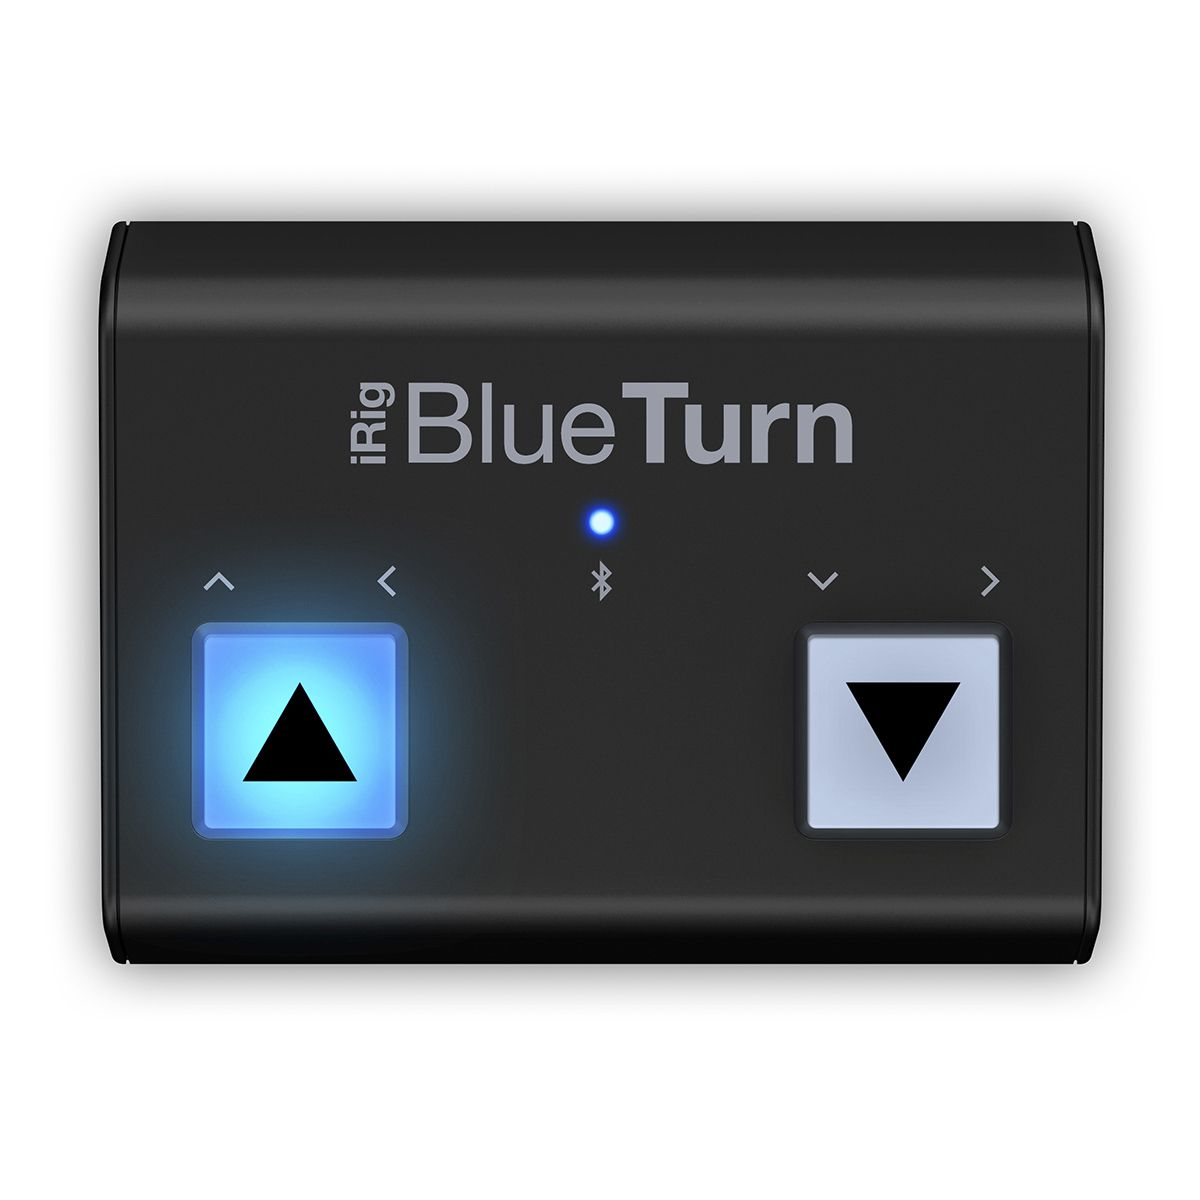 Pedal Controlador IK Multimedia iRig Blue Turn Bluetooth